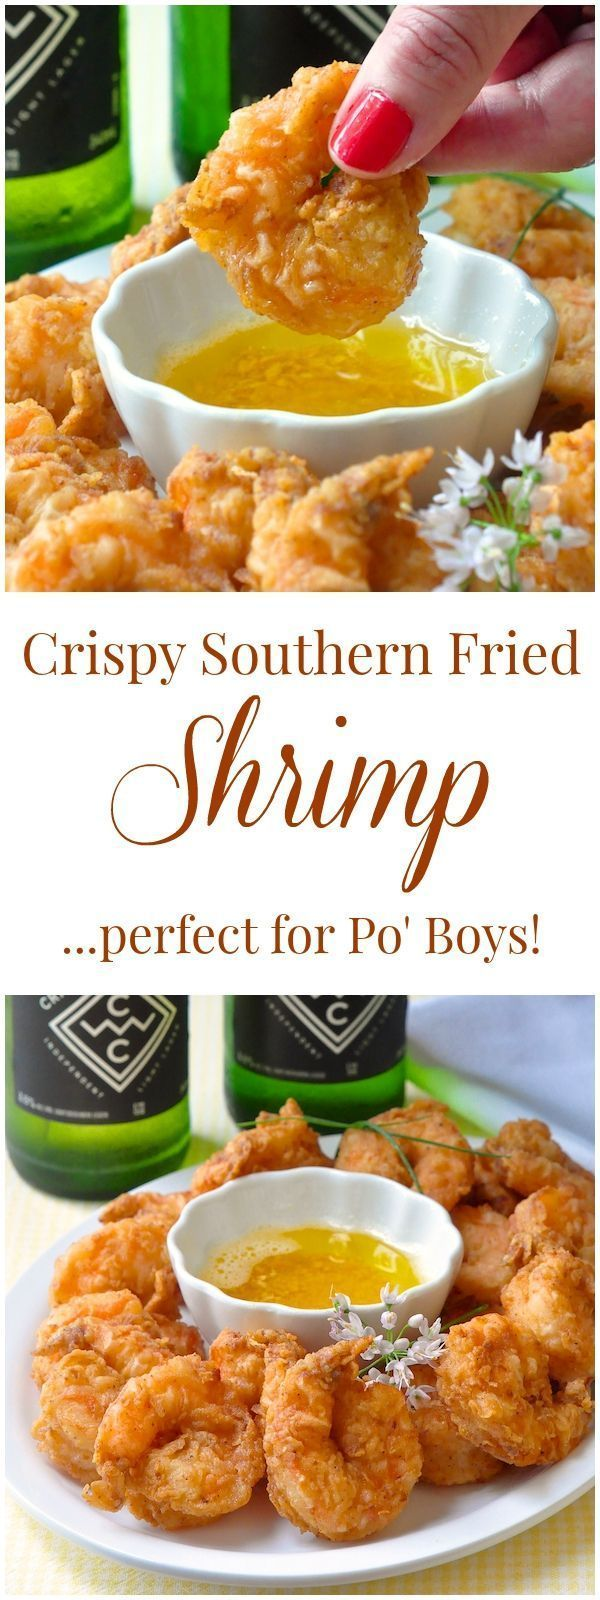 These beautifully seasoned crispy shrimp are very versatile. Have them with oven baked wedge fries for dinner, dipped in garlic butter for party finger food, or piled high in a classic New Orleans Po'